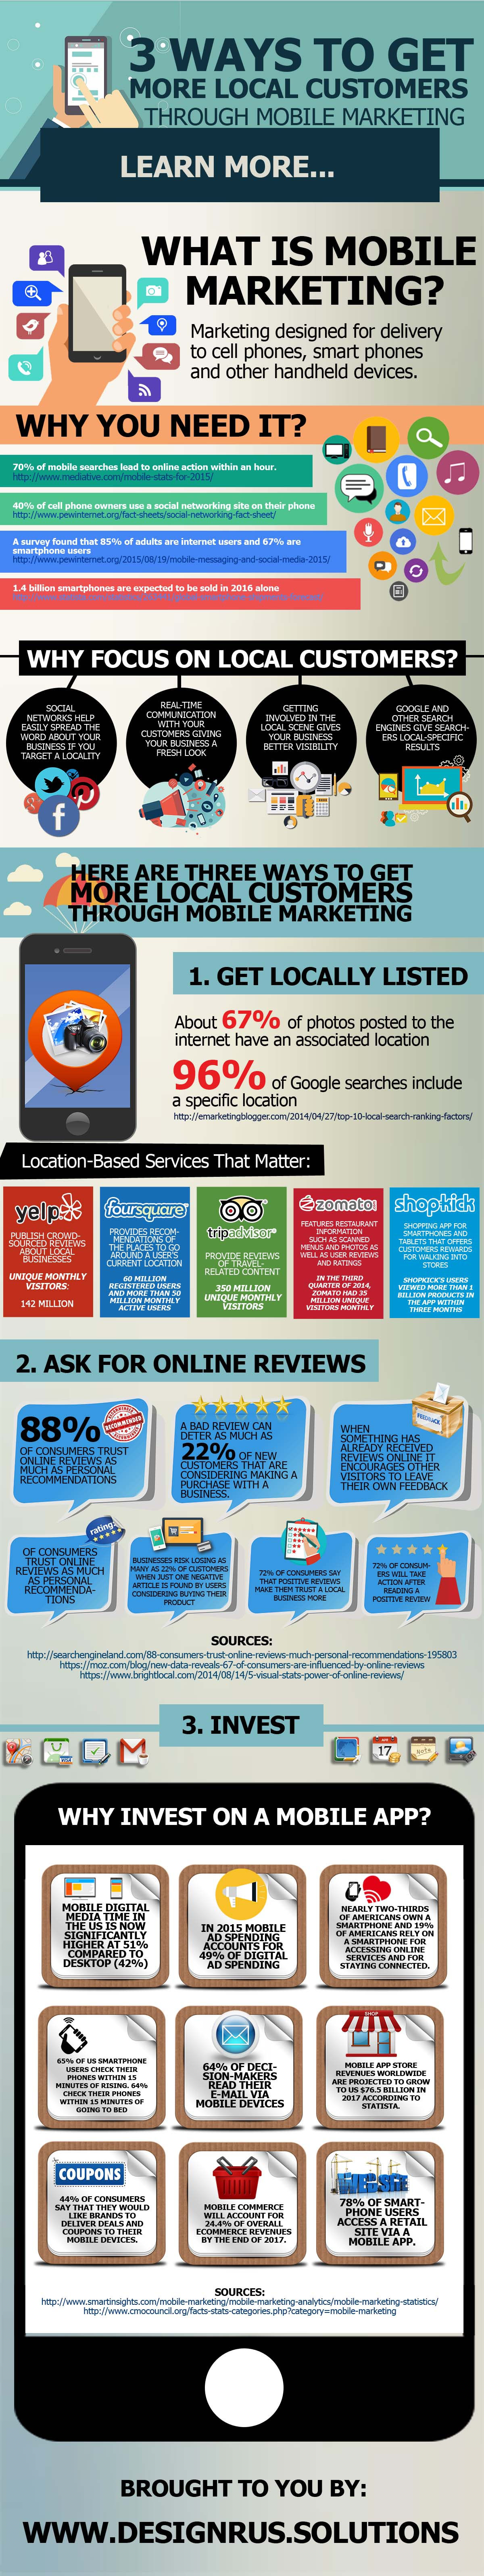 3_Ways_to_get_More_Local_Customers_through_Mobile_Marketing_designrus-dot-solutions